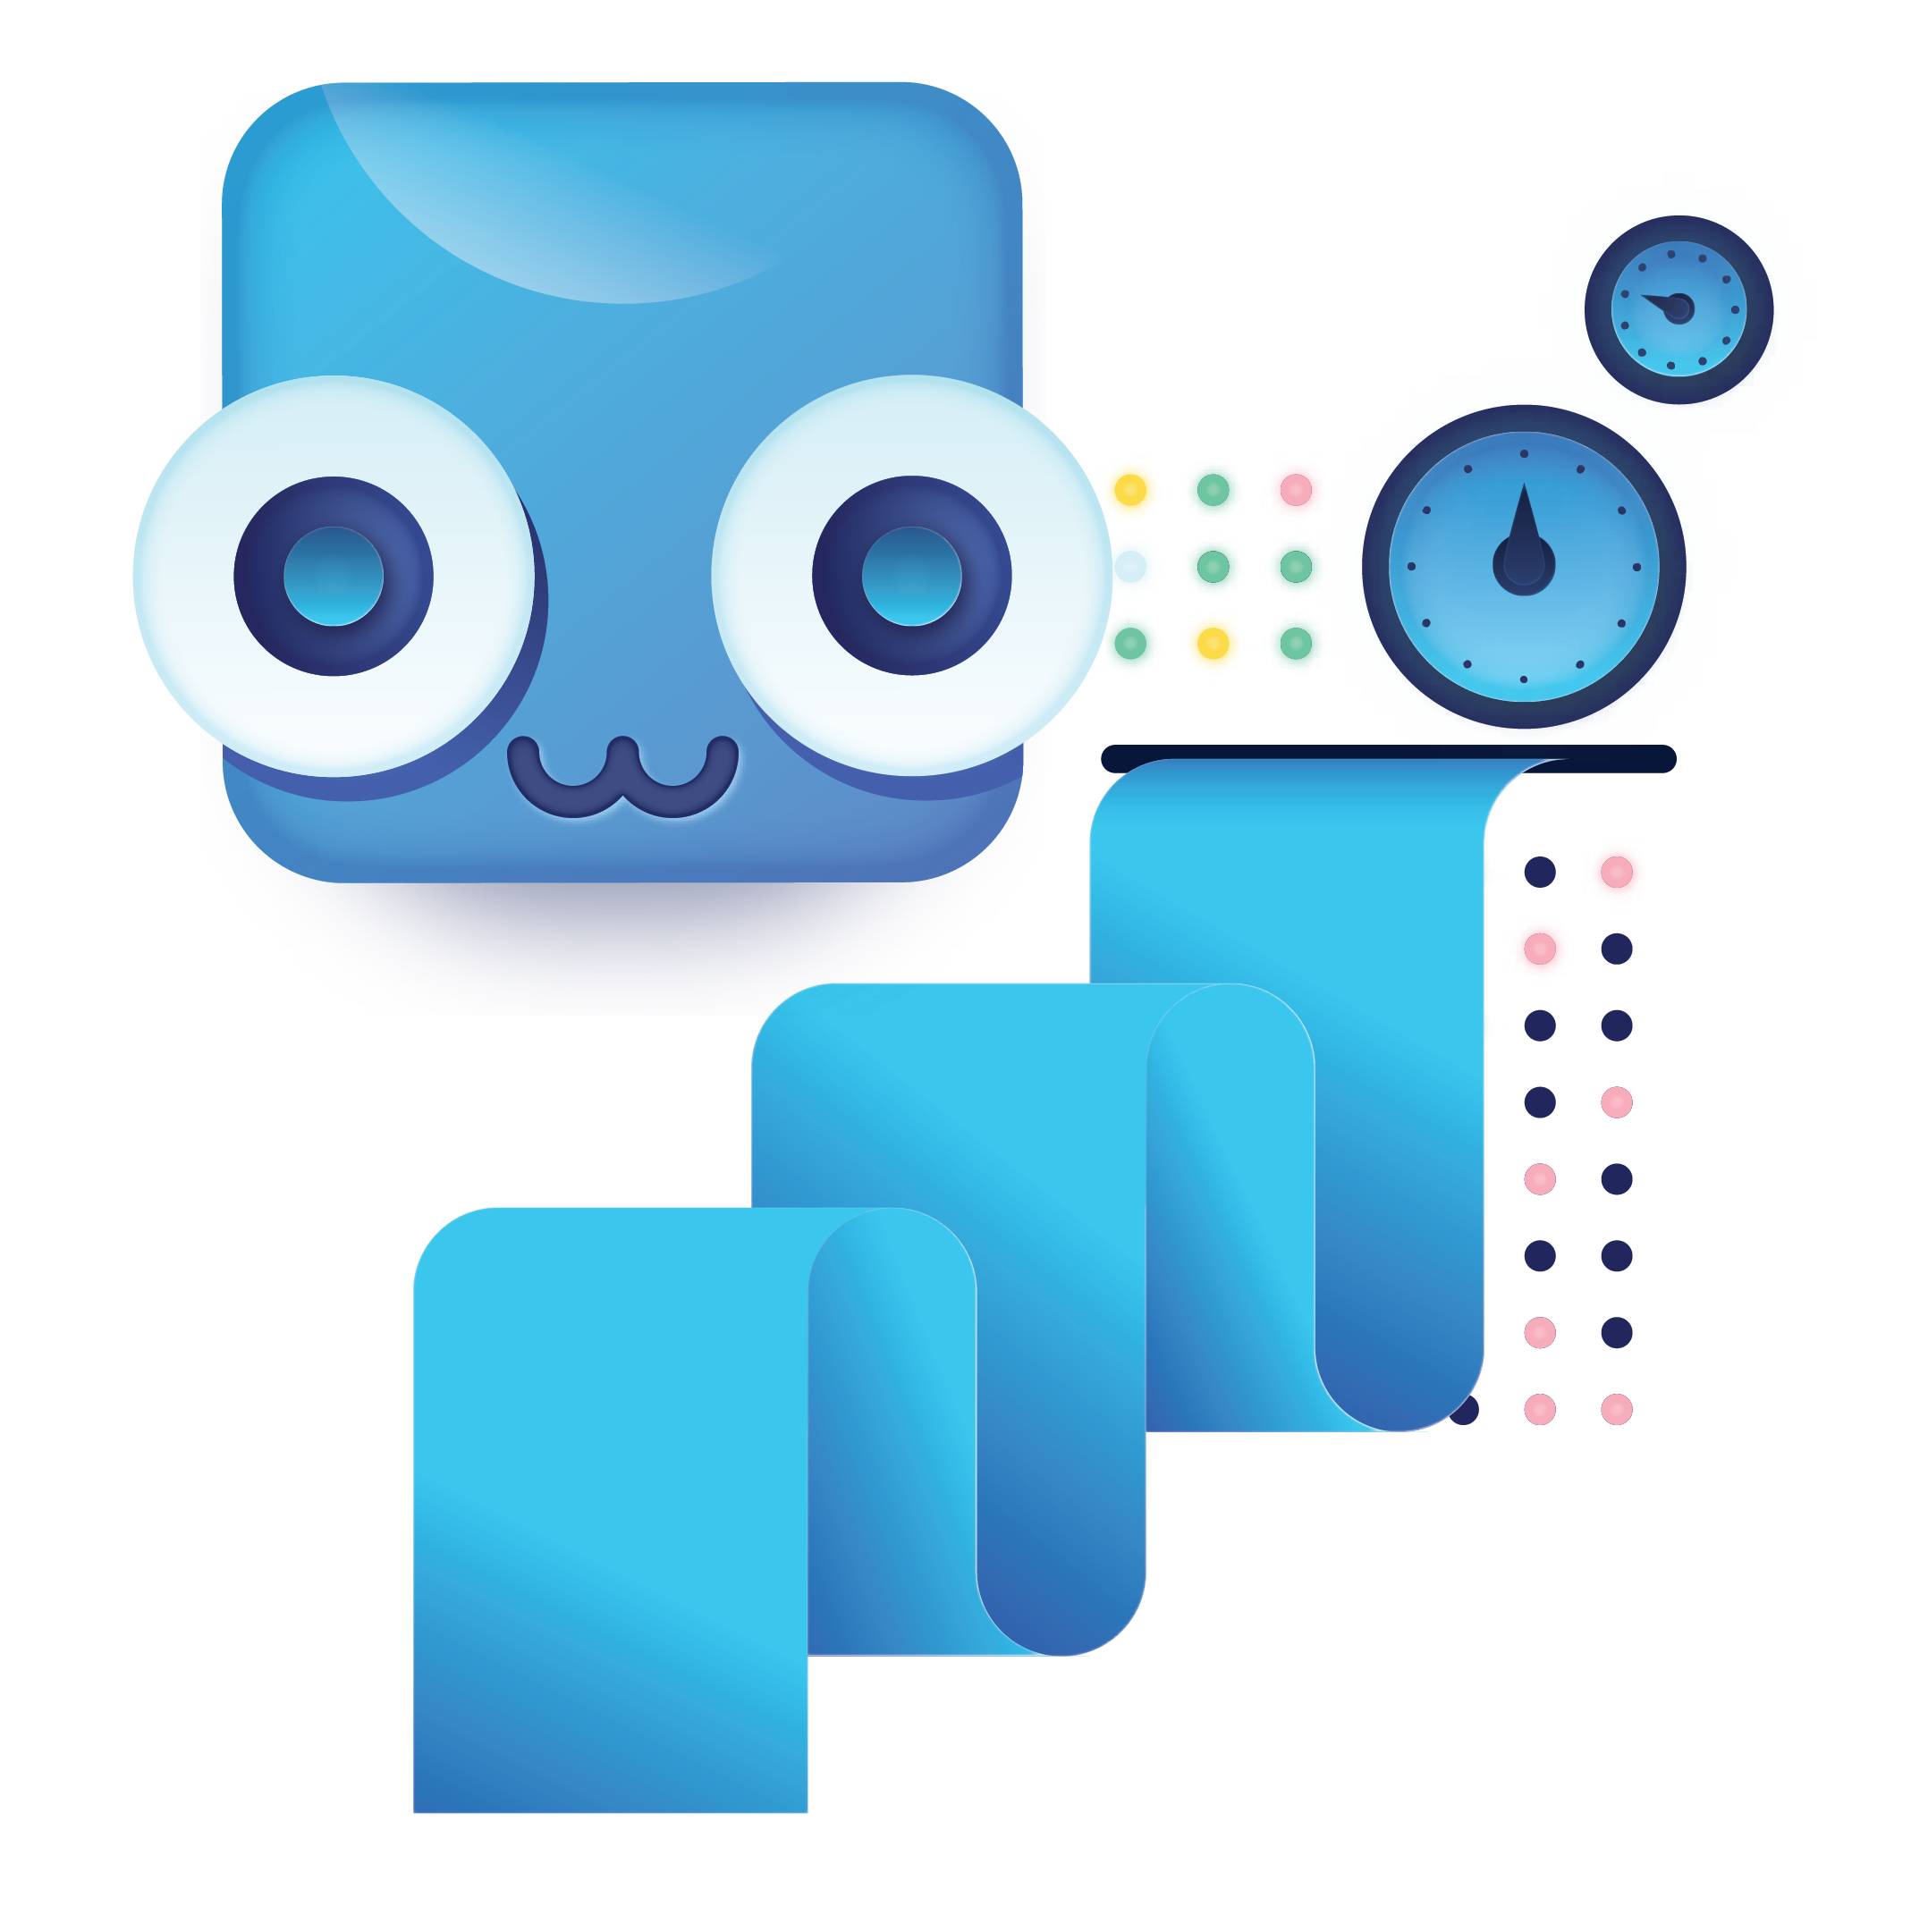 bigabid mascot robot and data output icons